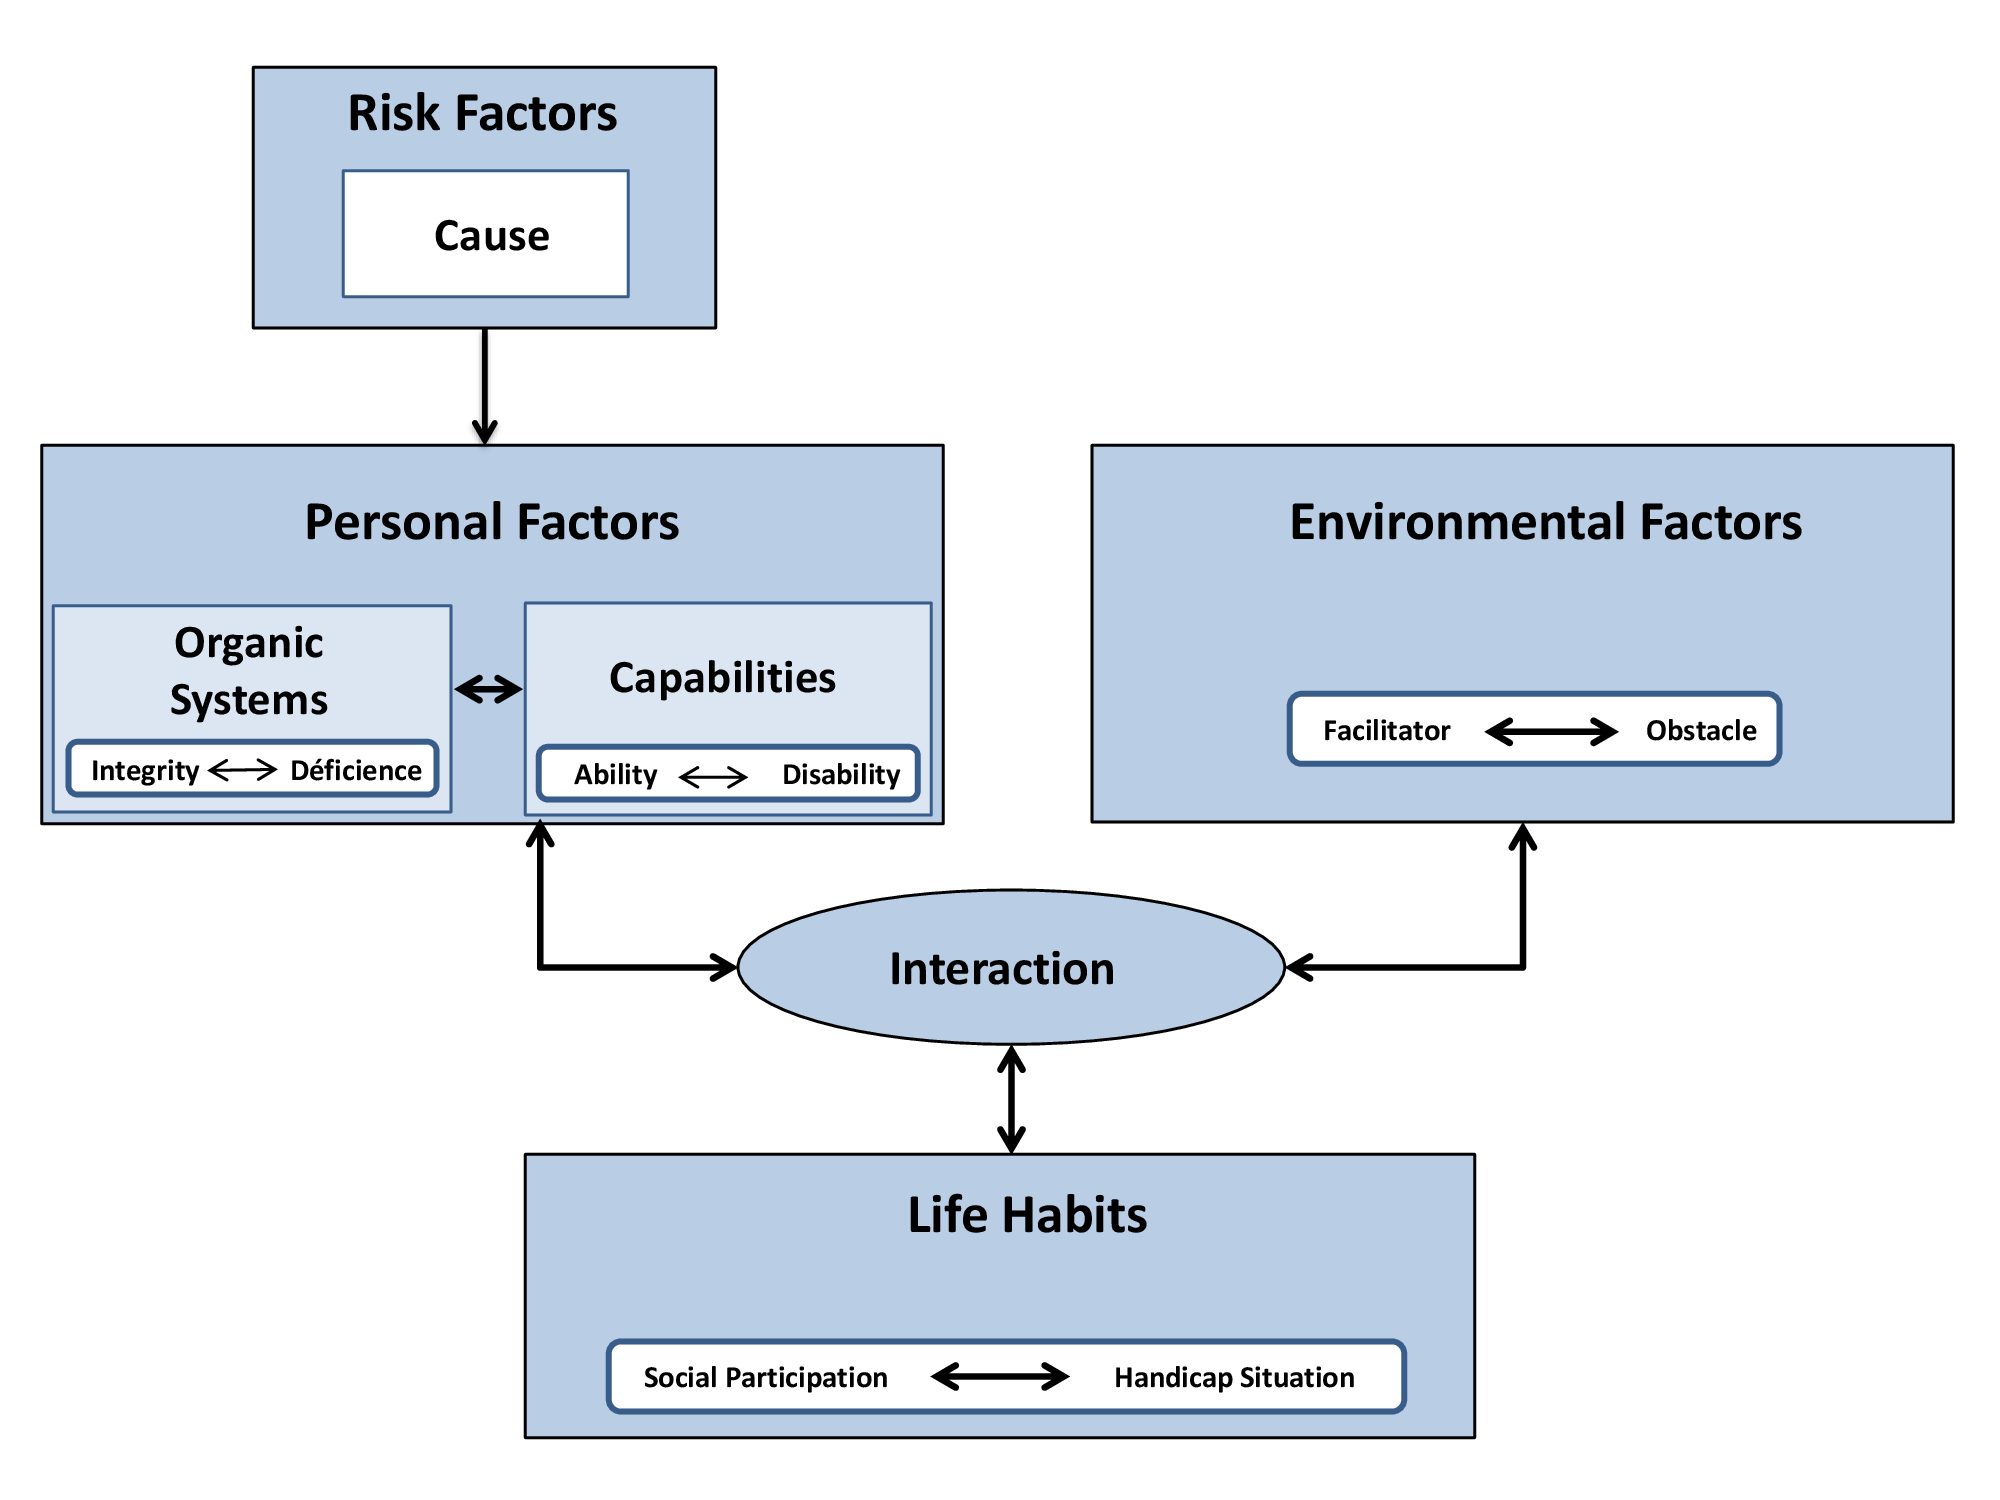 This image is made up of two squares that illustrate personal factors and environmental factors as well as a rectangle at the bottom of the image that illustrates the life habits found in the DCP model. The relationships between its forms are indicated by arrows that go in both directions. In addition, there is another square above personal factors that represents the risk factors. This square is accompanied by a unidirectional arrow pointing to personal factors.